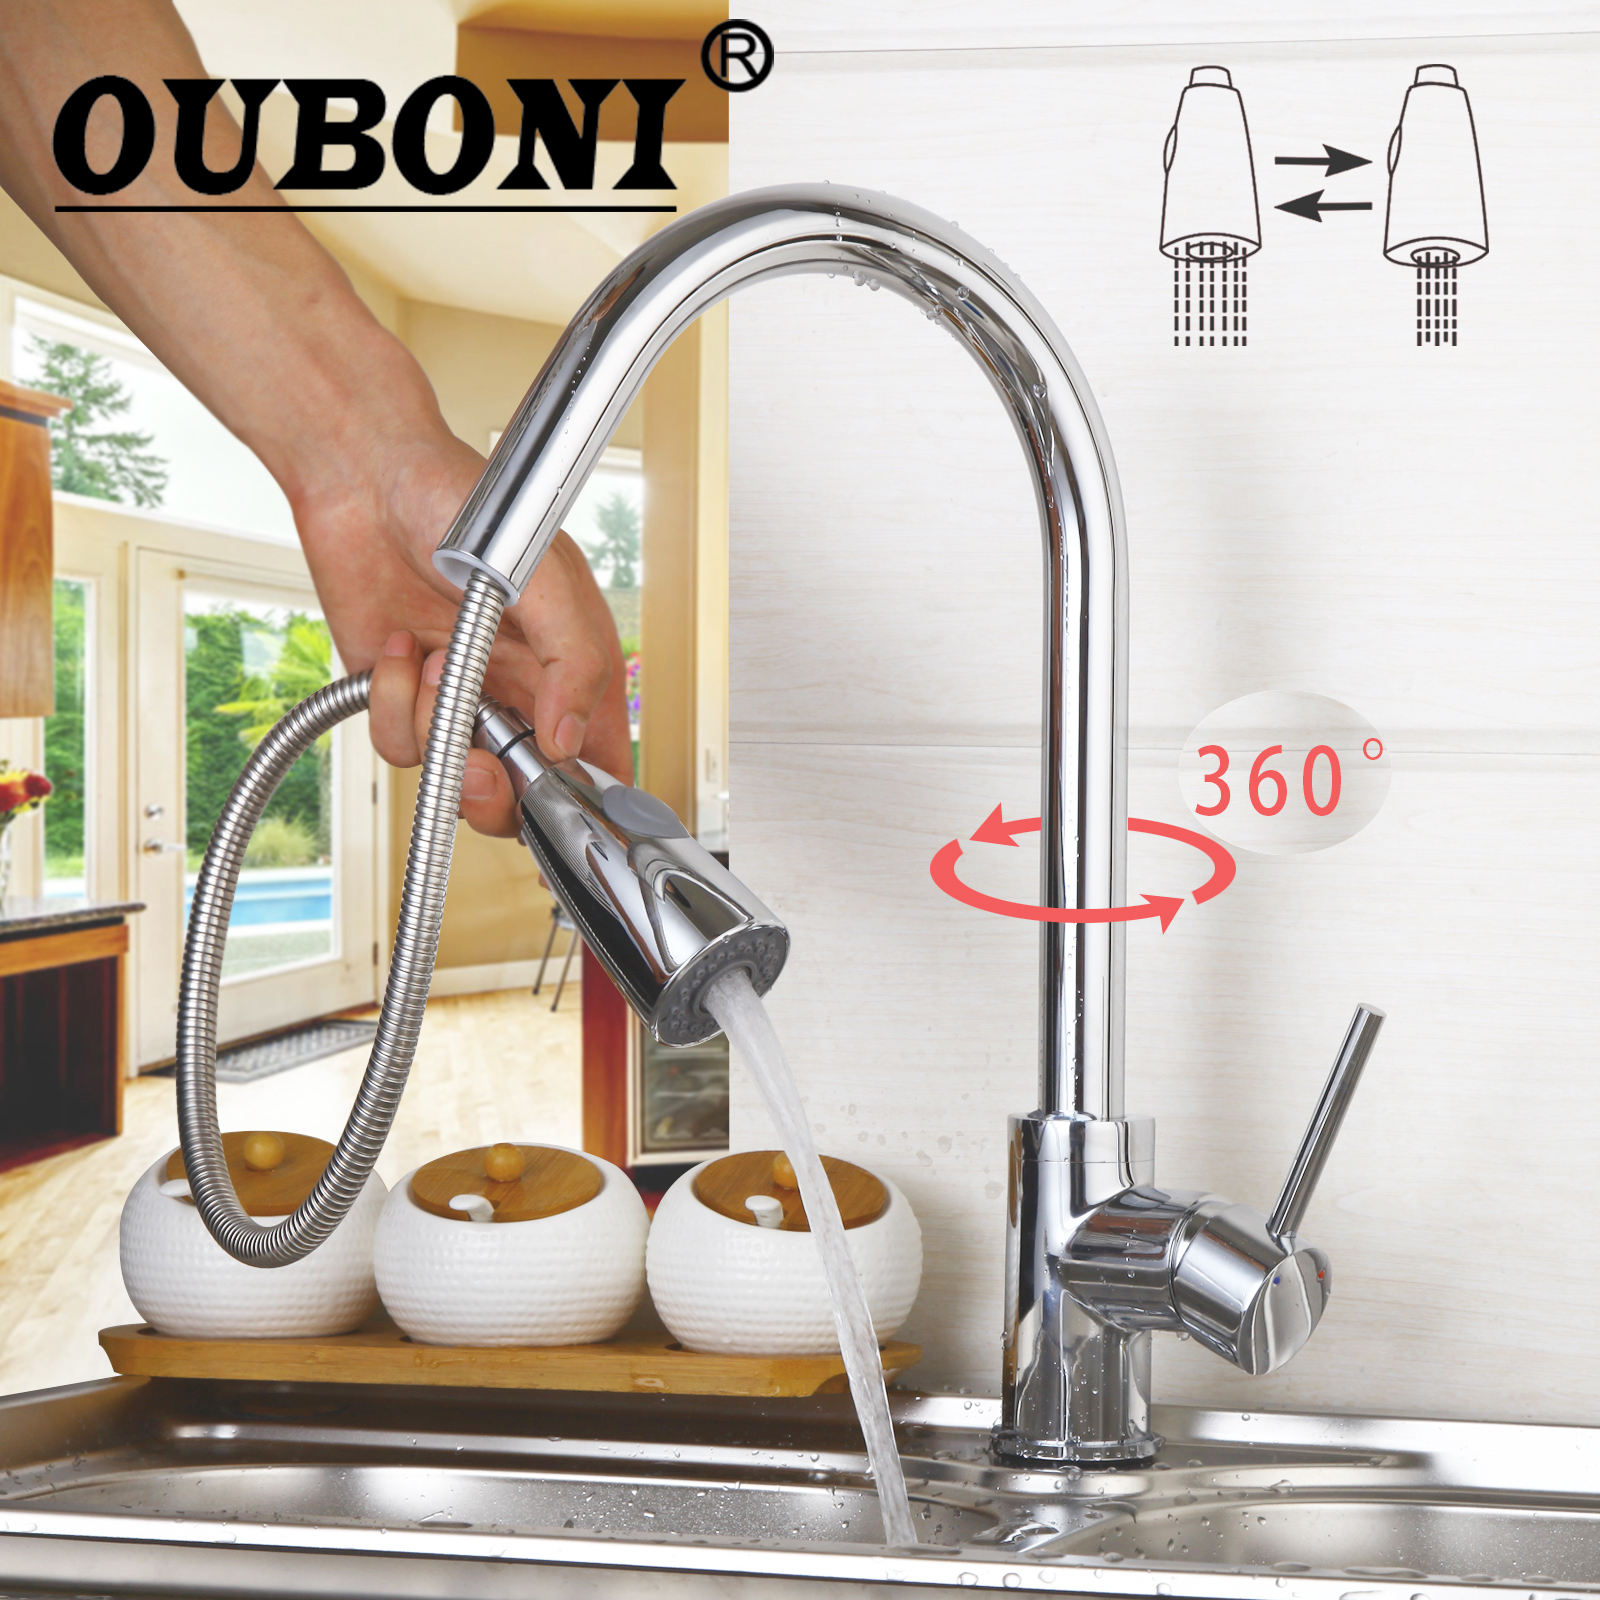 OUBONI 360 Swivel Stream Pull Out Spout Contemporary Kitchen Sink Faucet Polish Chrome Brass Hot & Cold Water Mixer Tap golden brass kitchen faucet dual handles vessel sink mixer tap swivel spout w pure water tap